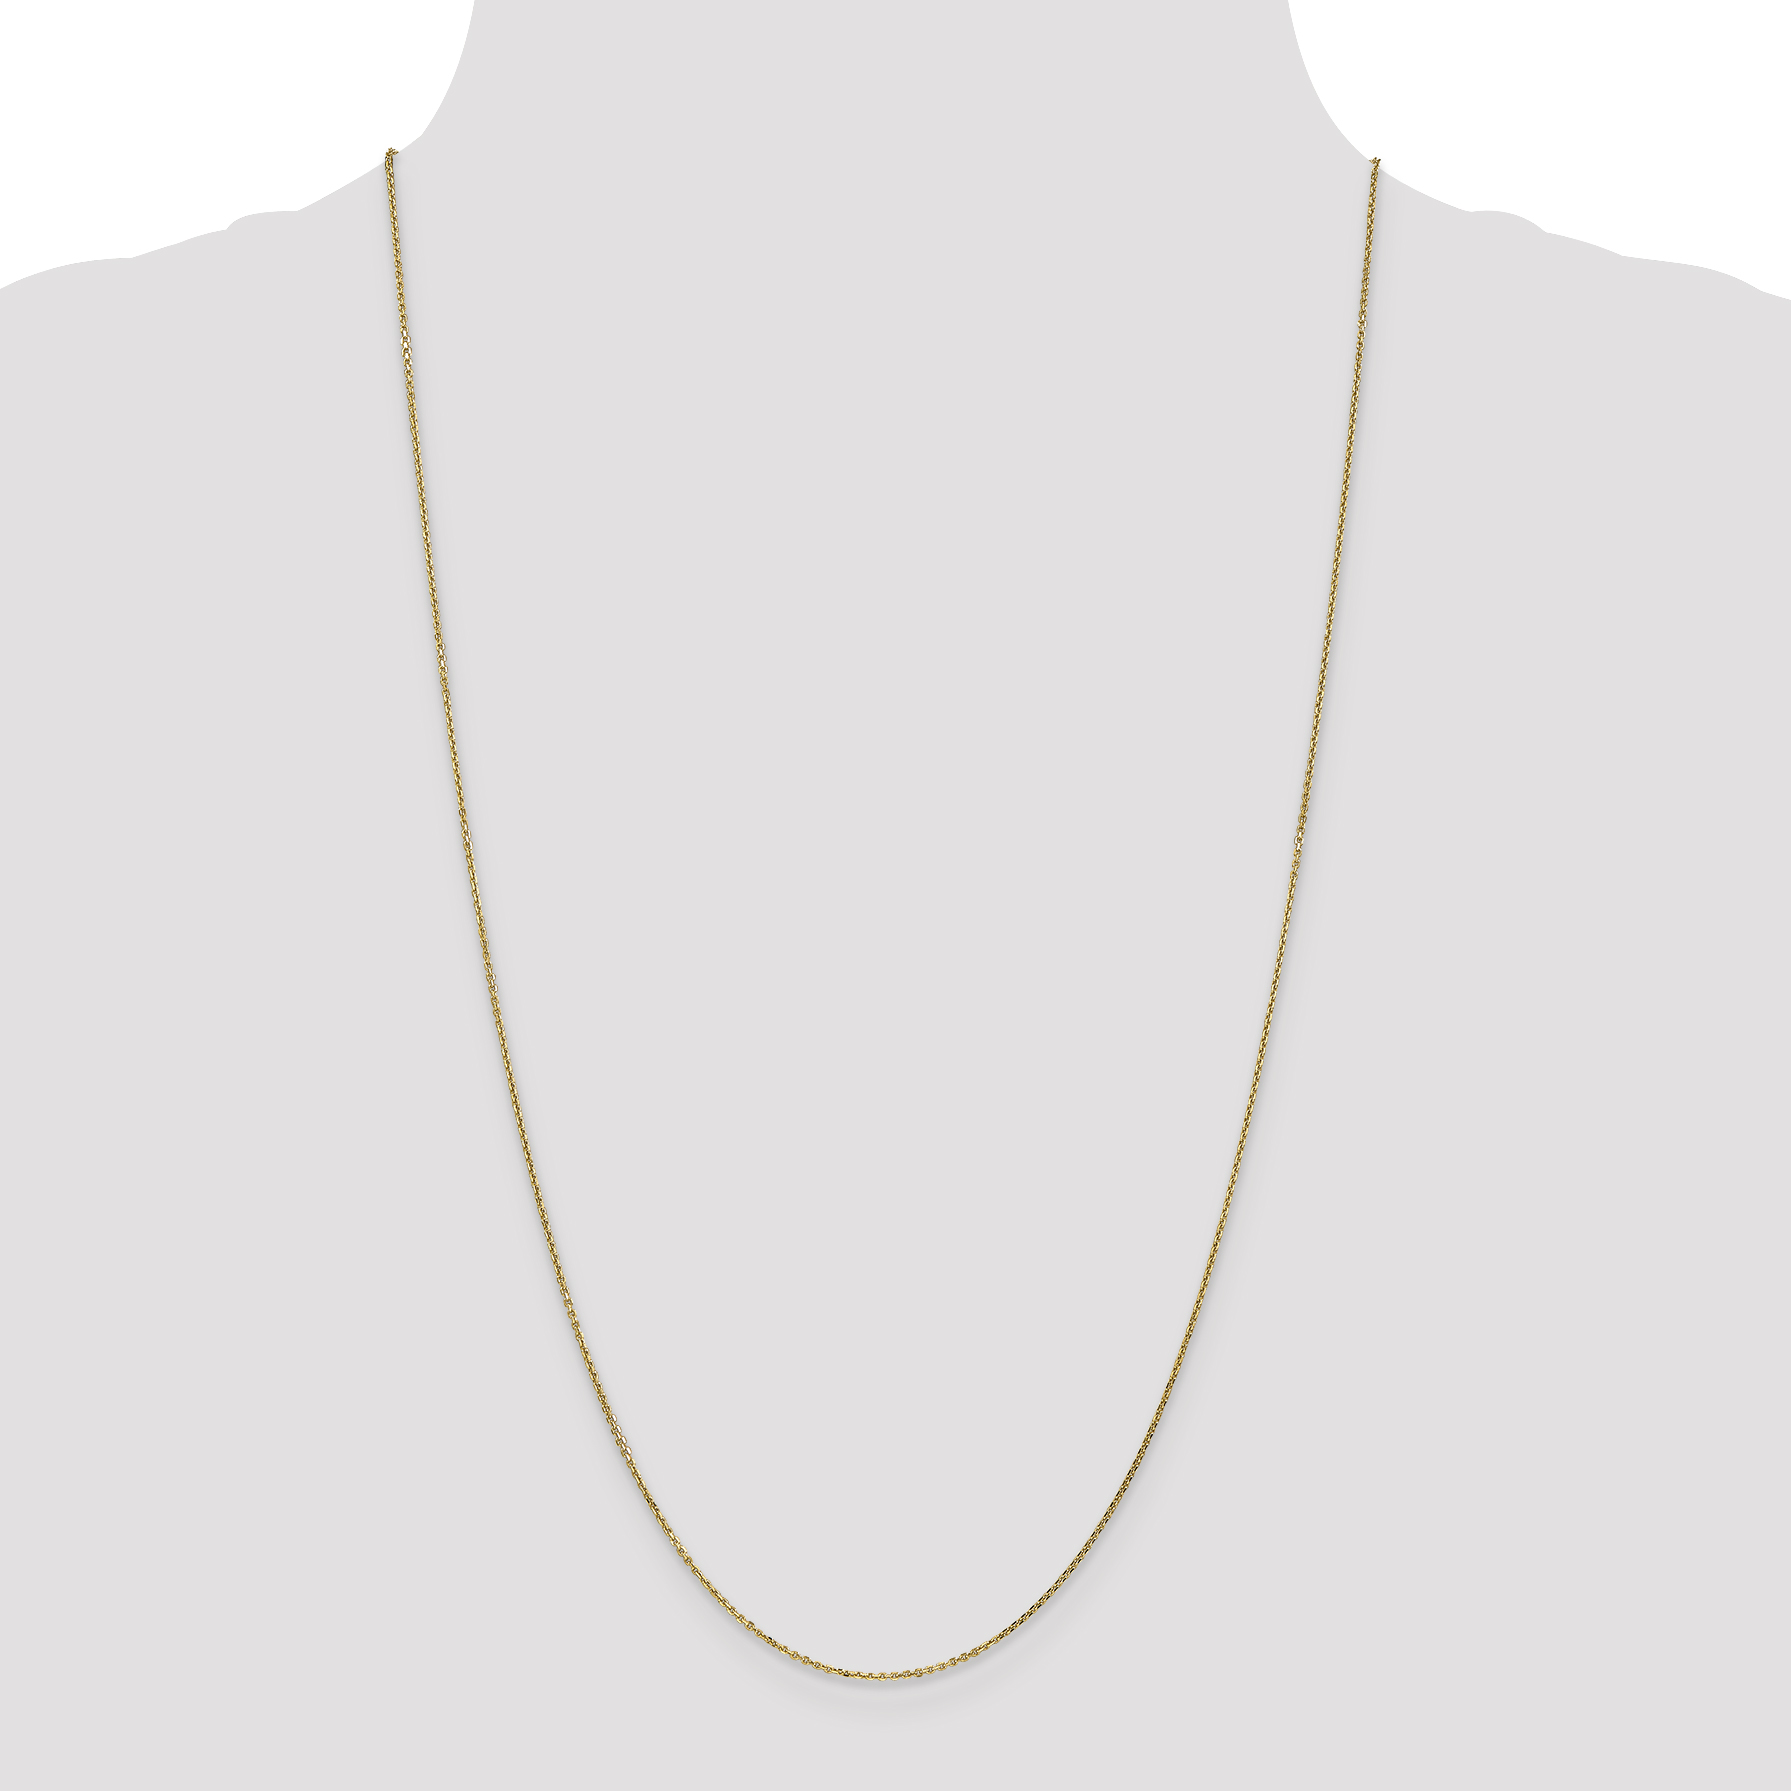 14K Yellow Gold .95mm Diamond Cut Cable Chain 24 Inch - image 2 de 5